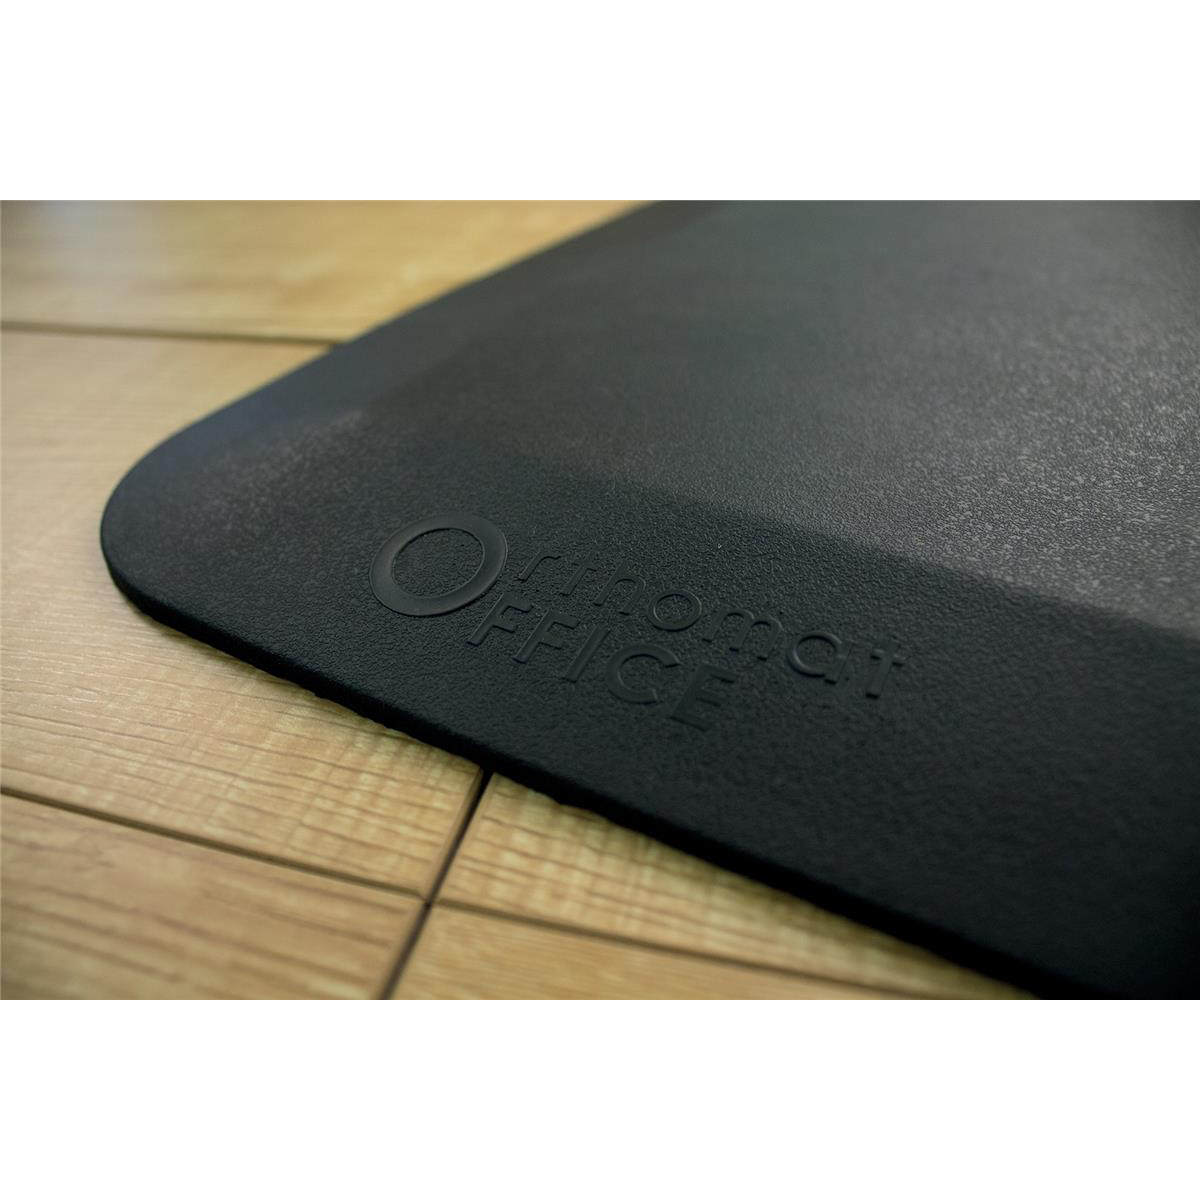 Image for COBA Orthomat Office Standing Desk Mat Anti-slip Bevelled Edge 500x800mm Black Ref OO010001